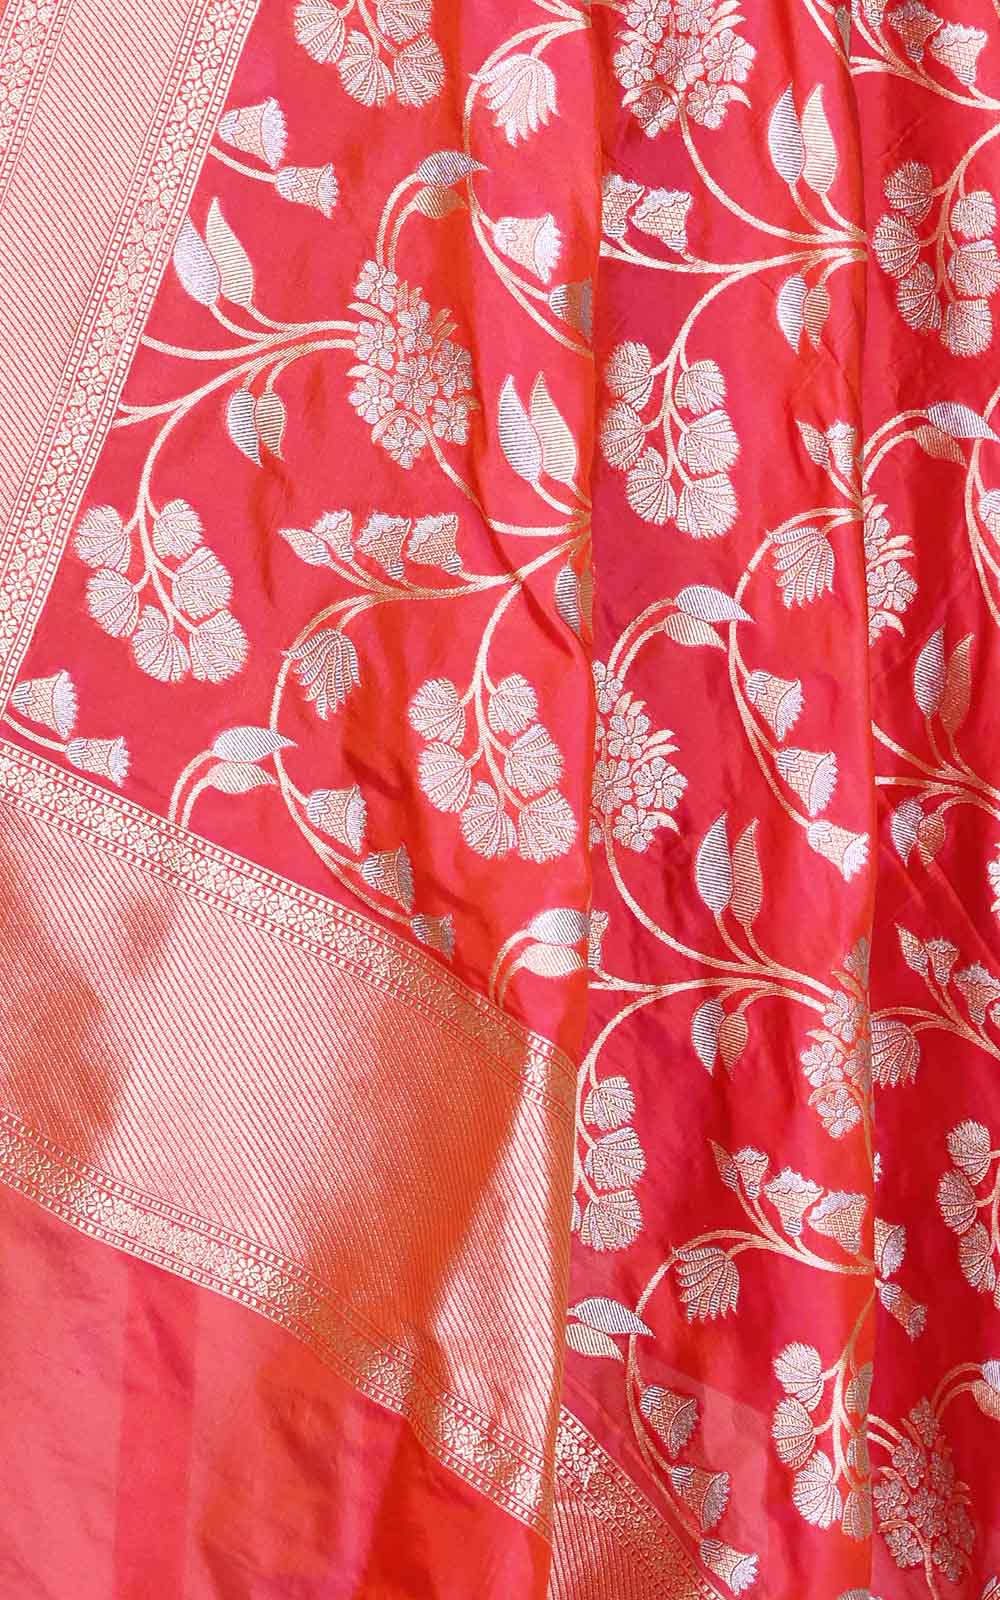 Salmon Katan silk Banarasi dupatta with artistic sona rupa floral jaal (2) Close up